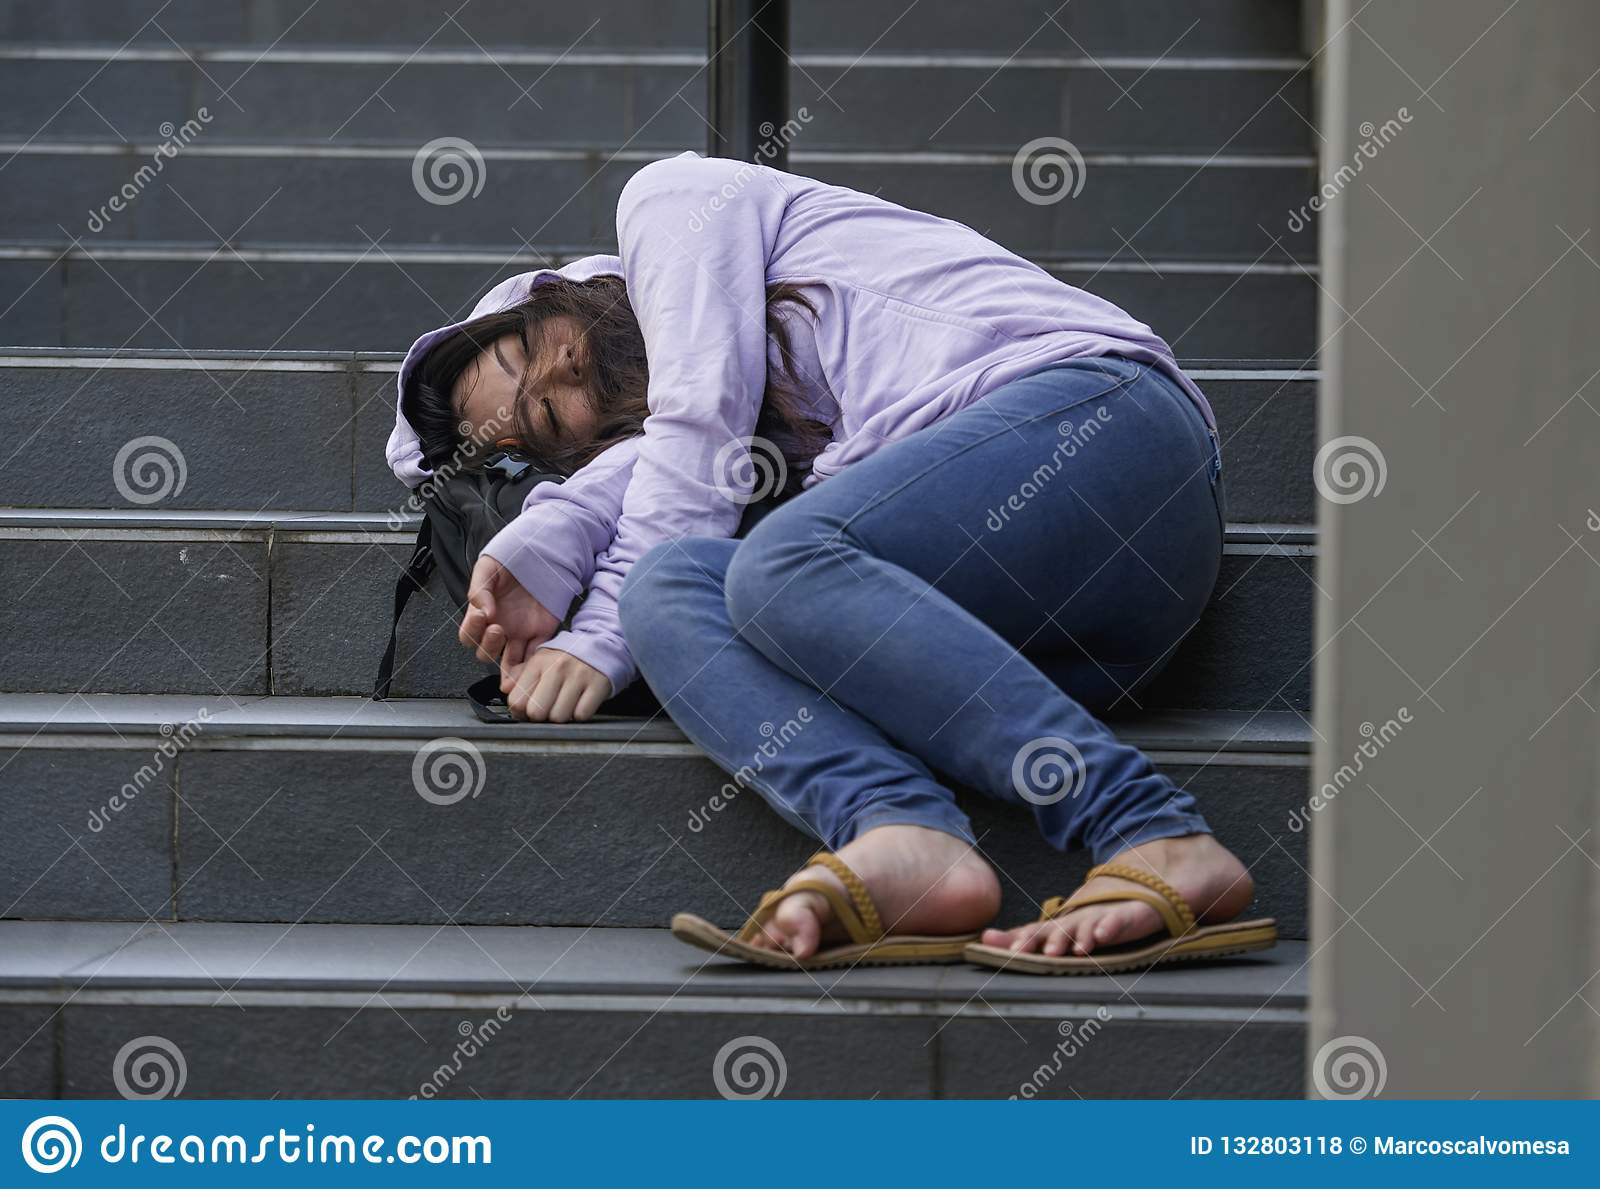 Oung depressed and intoxicated Asian student woman or teenager girl sitting on street staircase drunk or high on drugs suffering